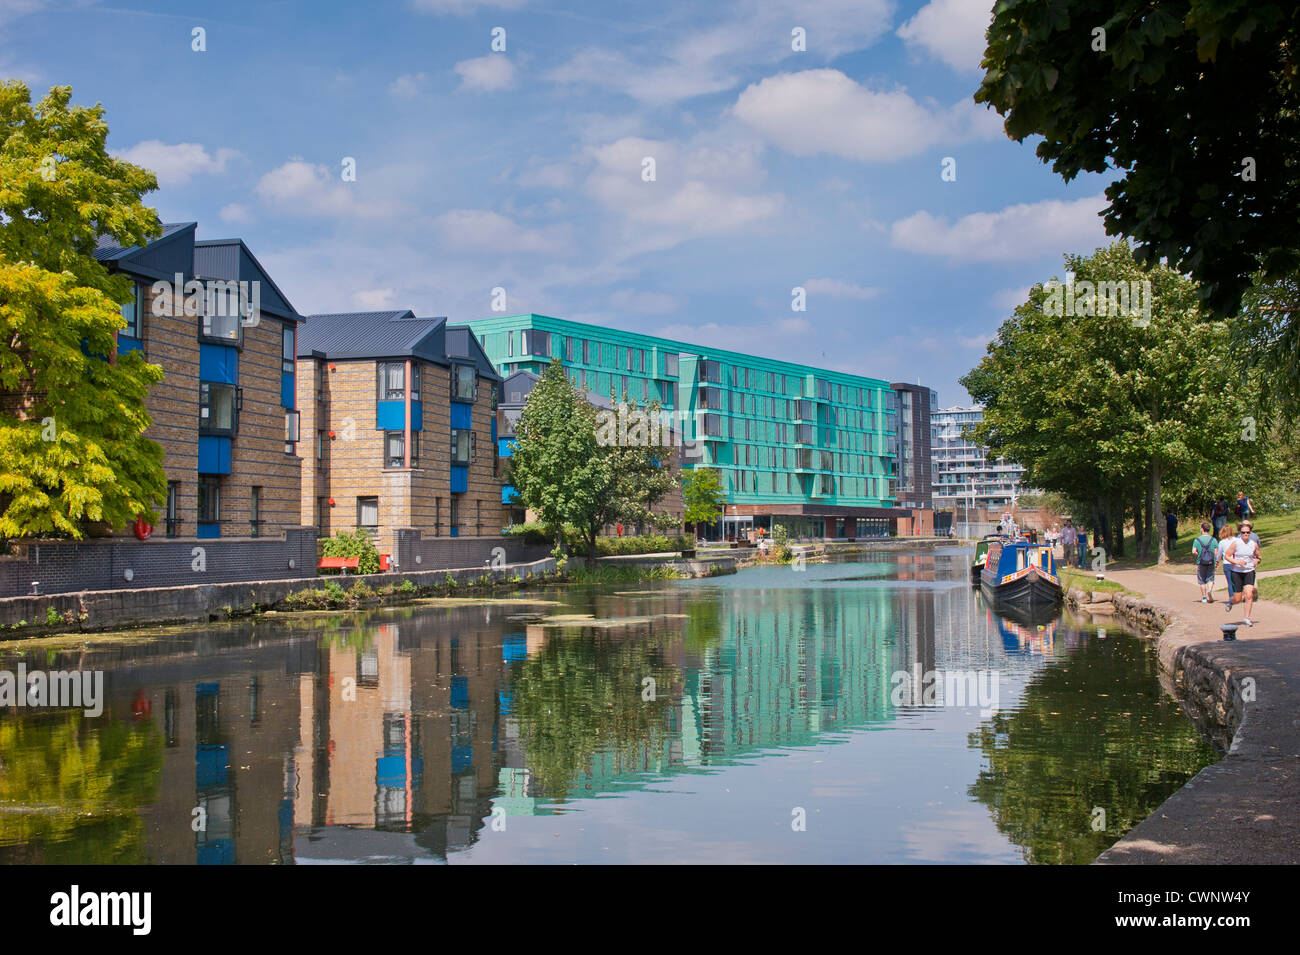 View along the towpath of the Regent's Canal near Mile End in London - Stock Image